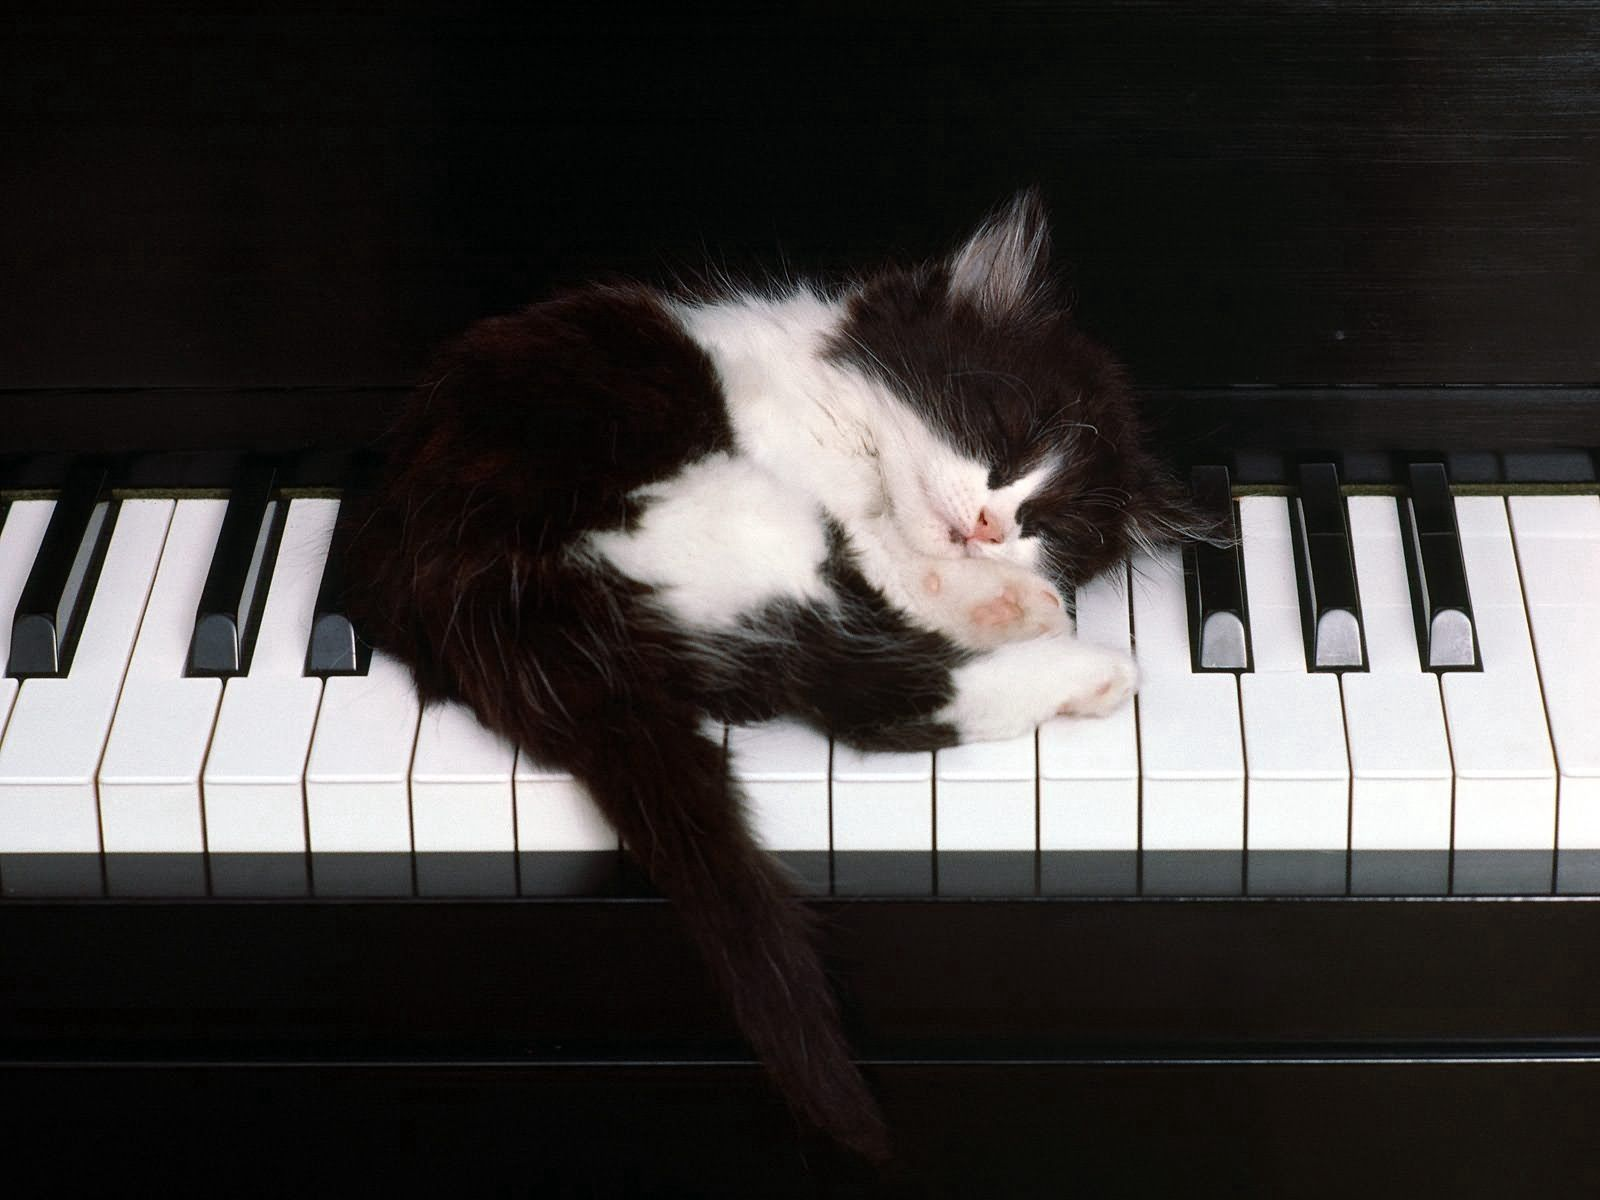 85918 Screensavers and Wallpapers Kitten for phone. Download Animals, Piano, Kitty, Kitten, Sleep, Dream pictures for free